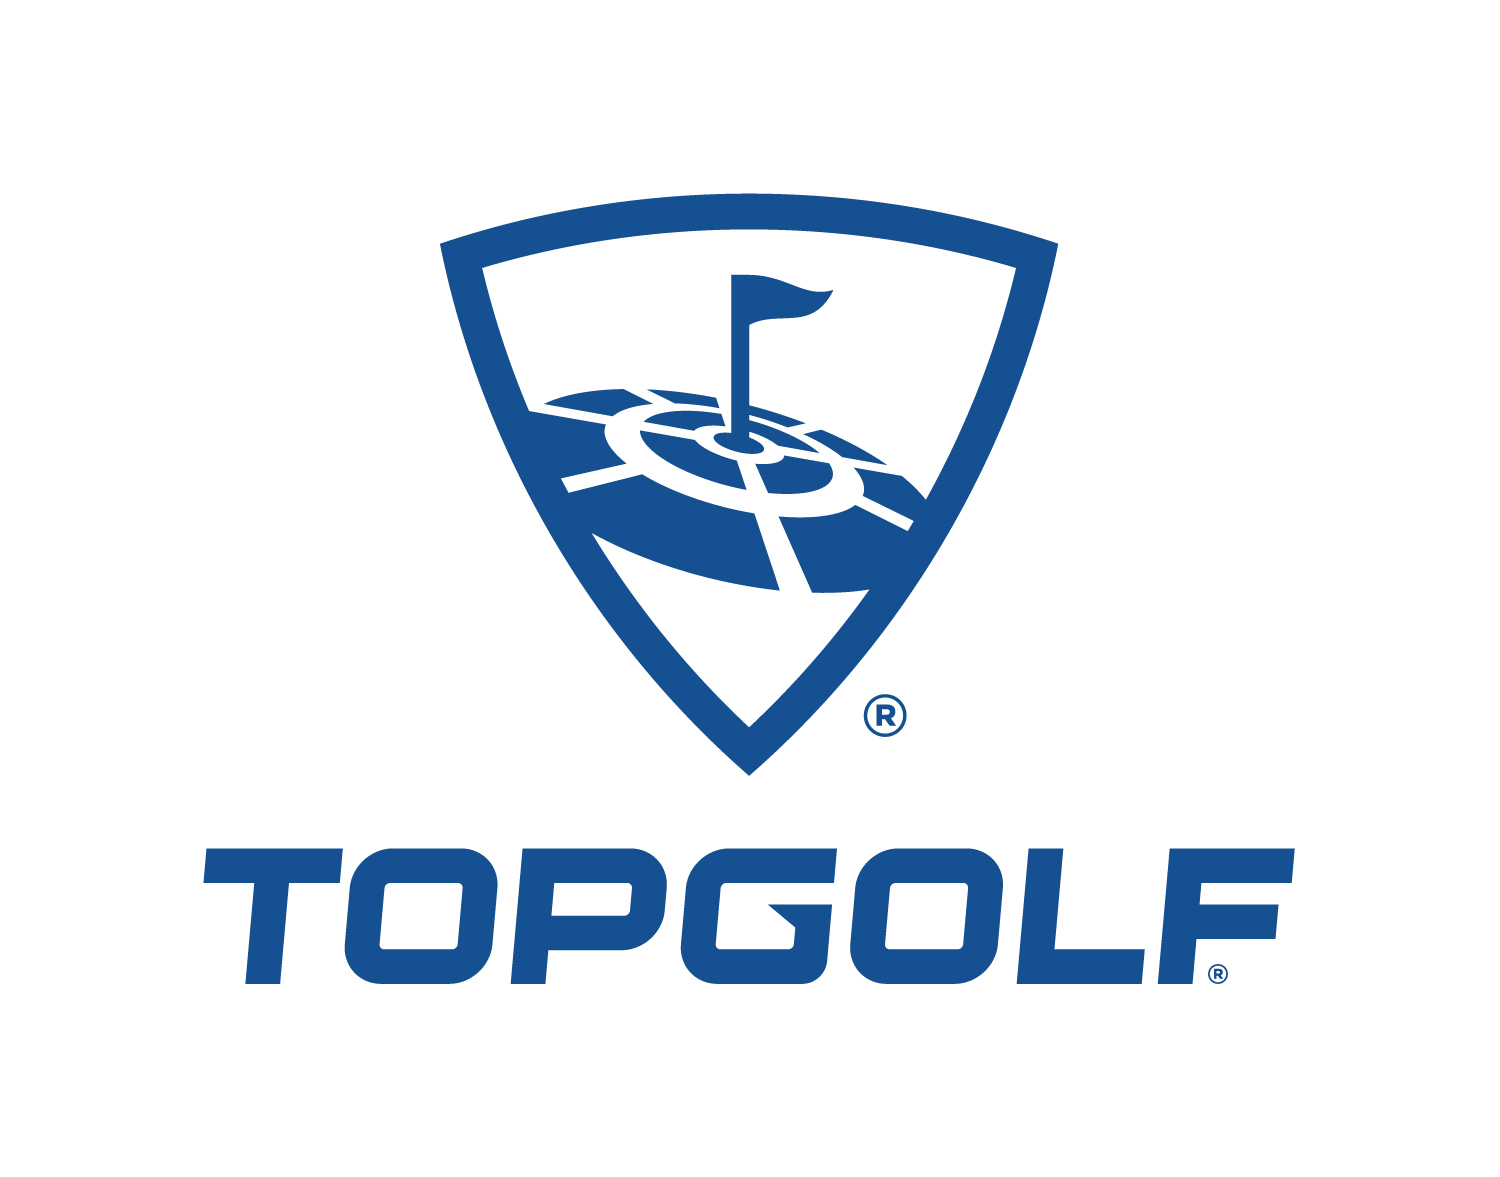 tg-logo-vertical-blue-trademarked-final-01